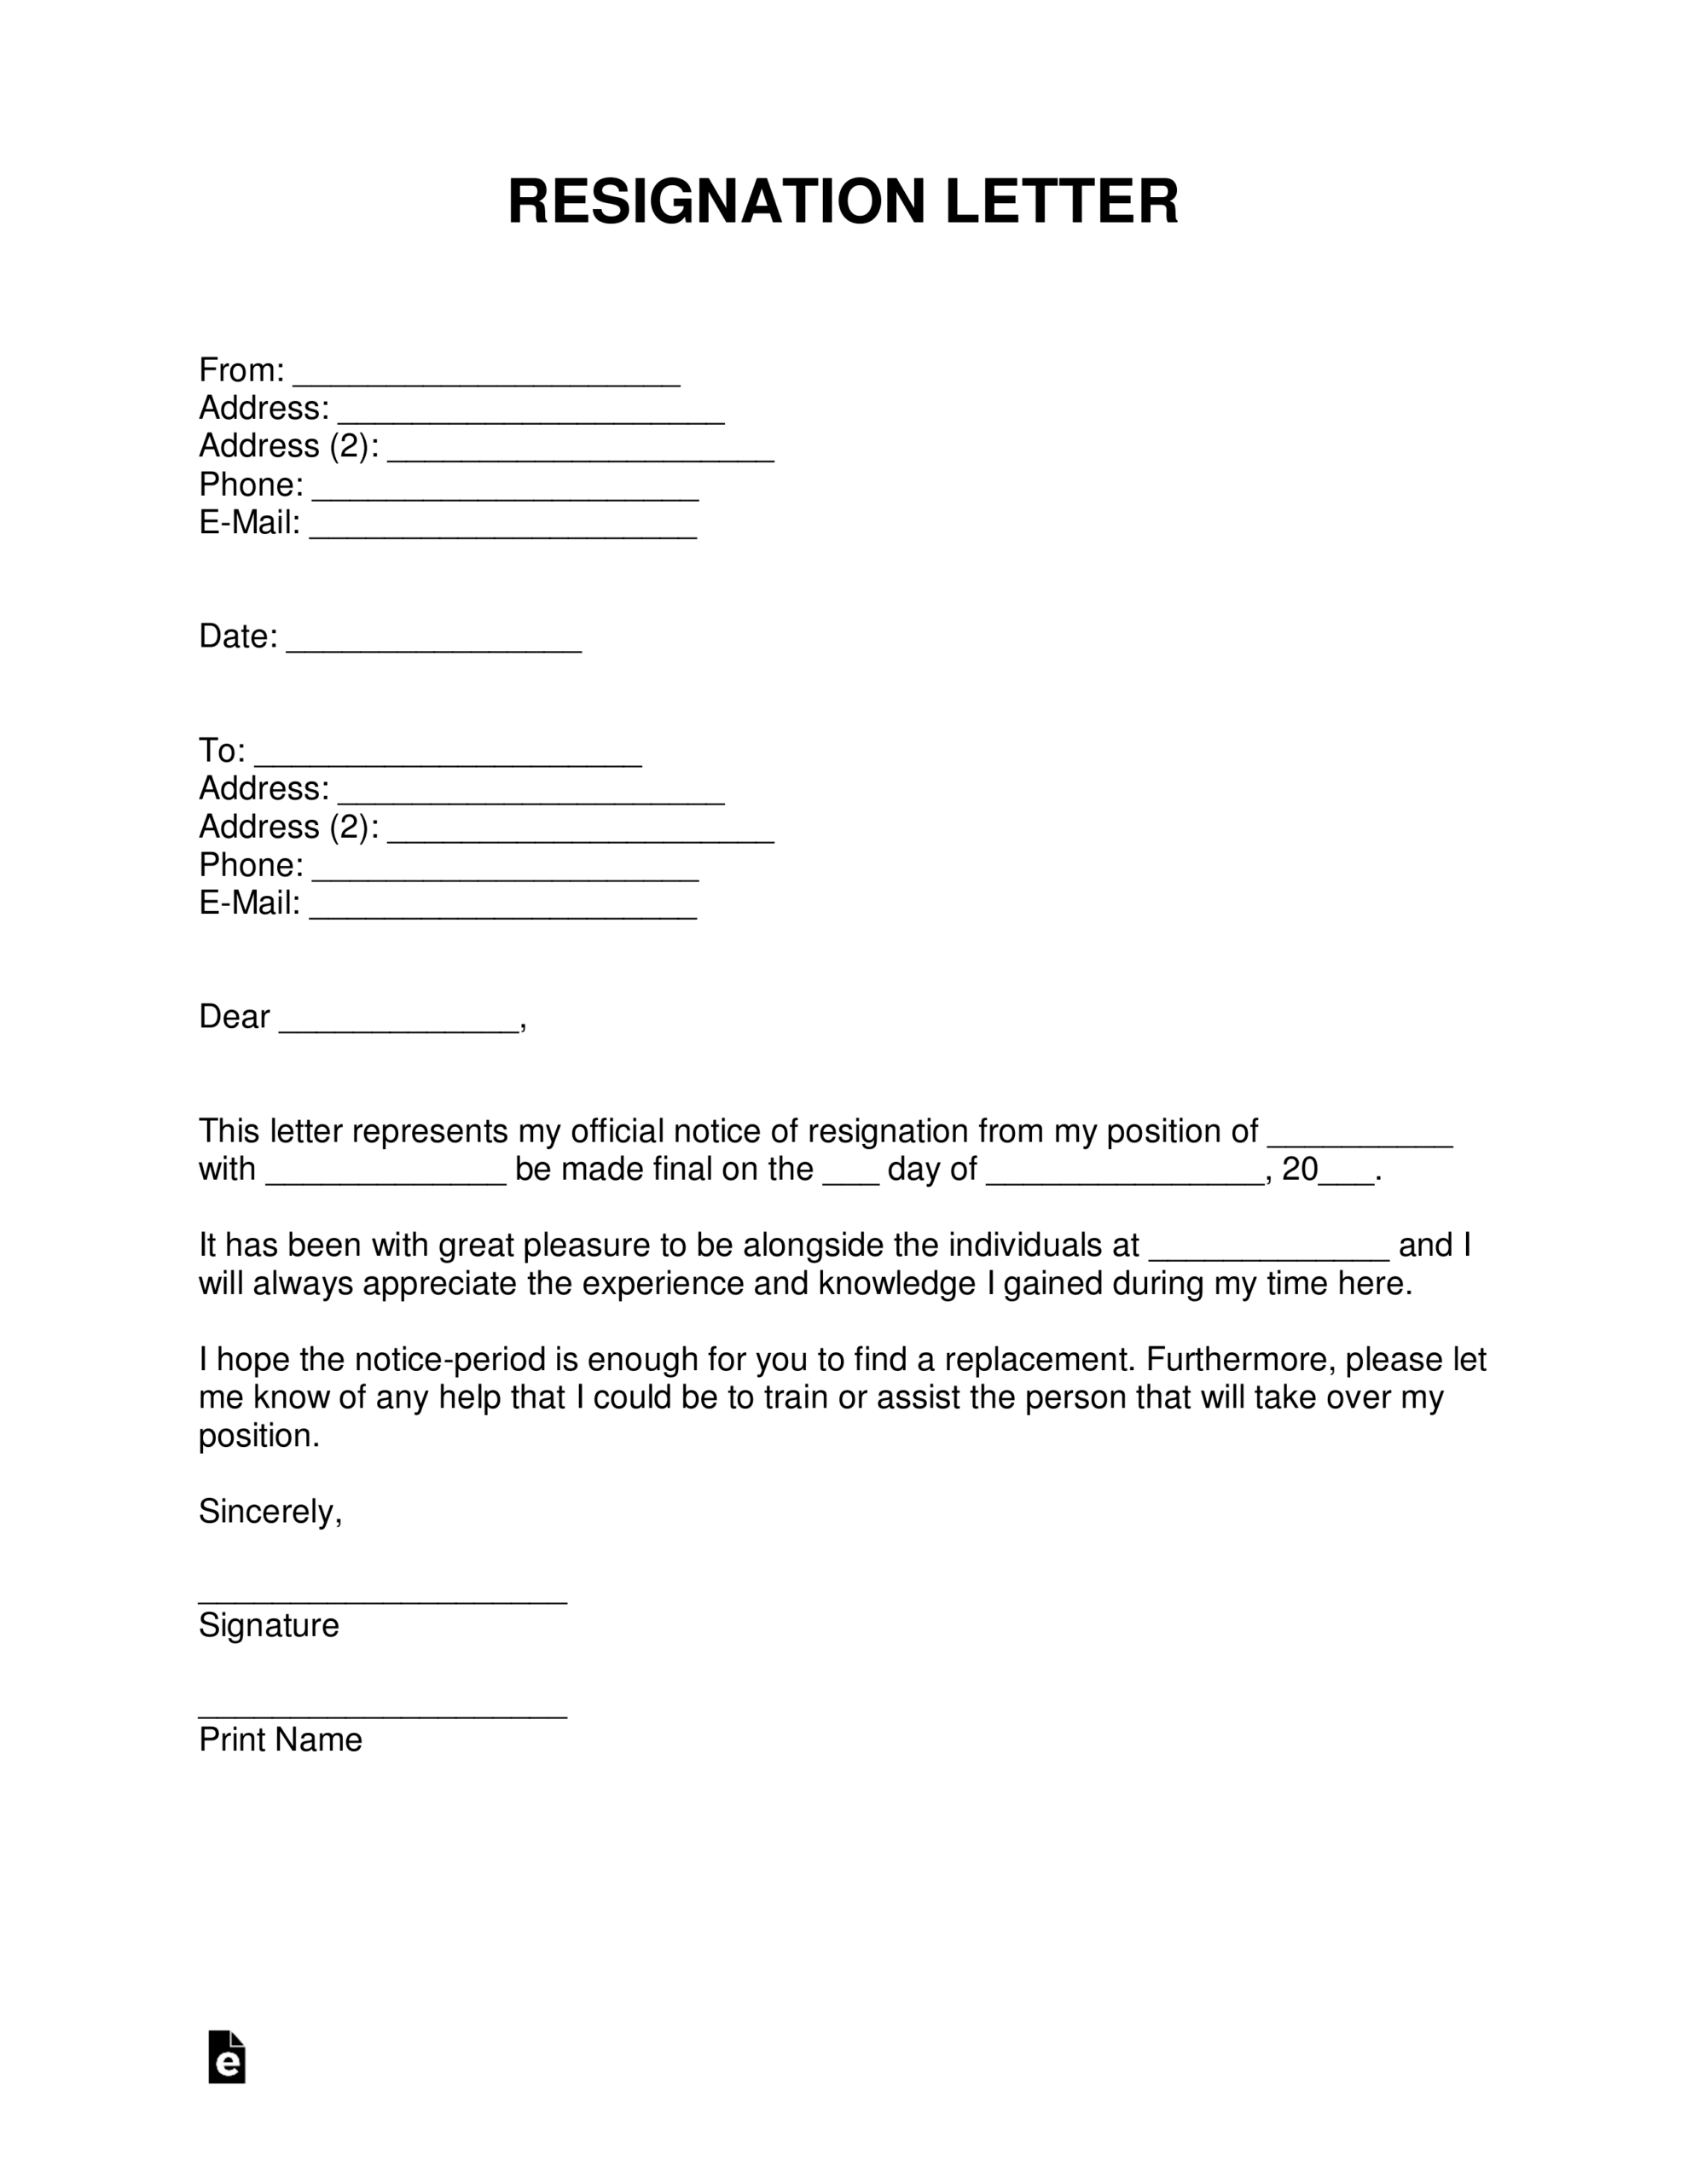 Free Resignation Letters | Templates & Samples - Pdf | Word With Regard To Two Week Notice Template Word